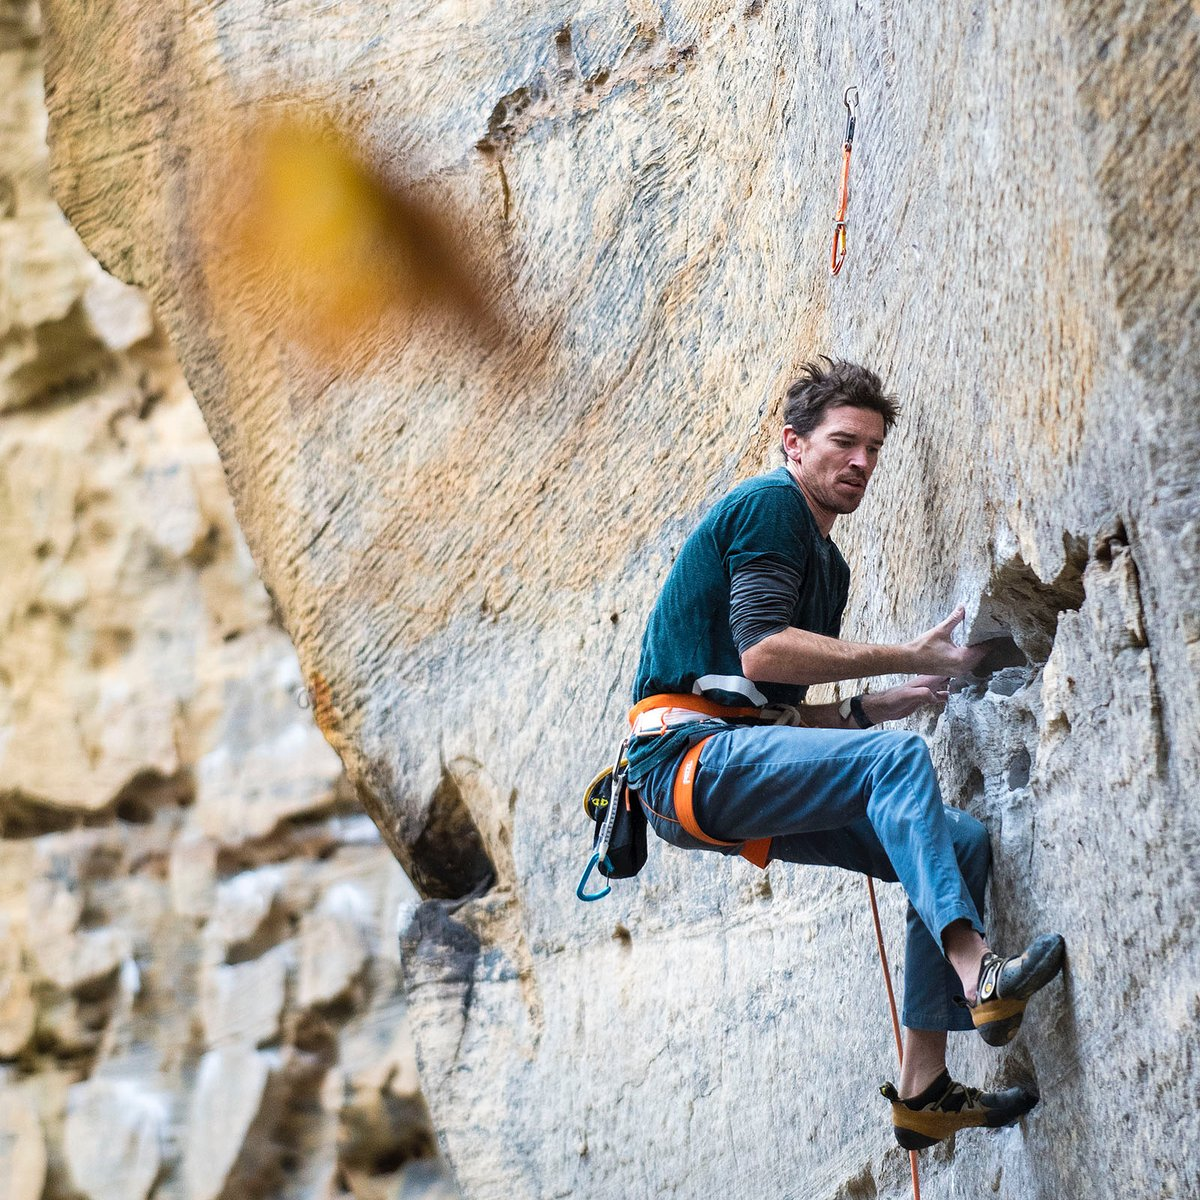 We're thrilled to announce that world-class mountaineer Adrian Ballinger @alpenglowexp will be featured in a chat with Emily & Liza at the Virtual Video Premiere on Dec 8 at 8pm ET!! REGISTER NOW >> https://t.co/F2CHhZHINM #TheMagicLine #CysticFibrosis #mountainlife #climbing https://t.co/QOZ3BWBMv9